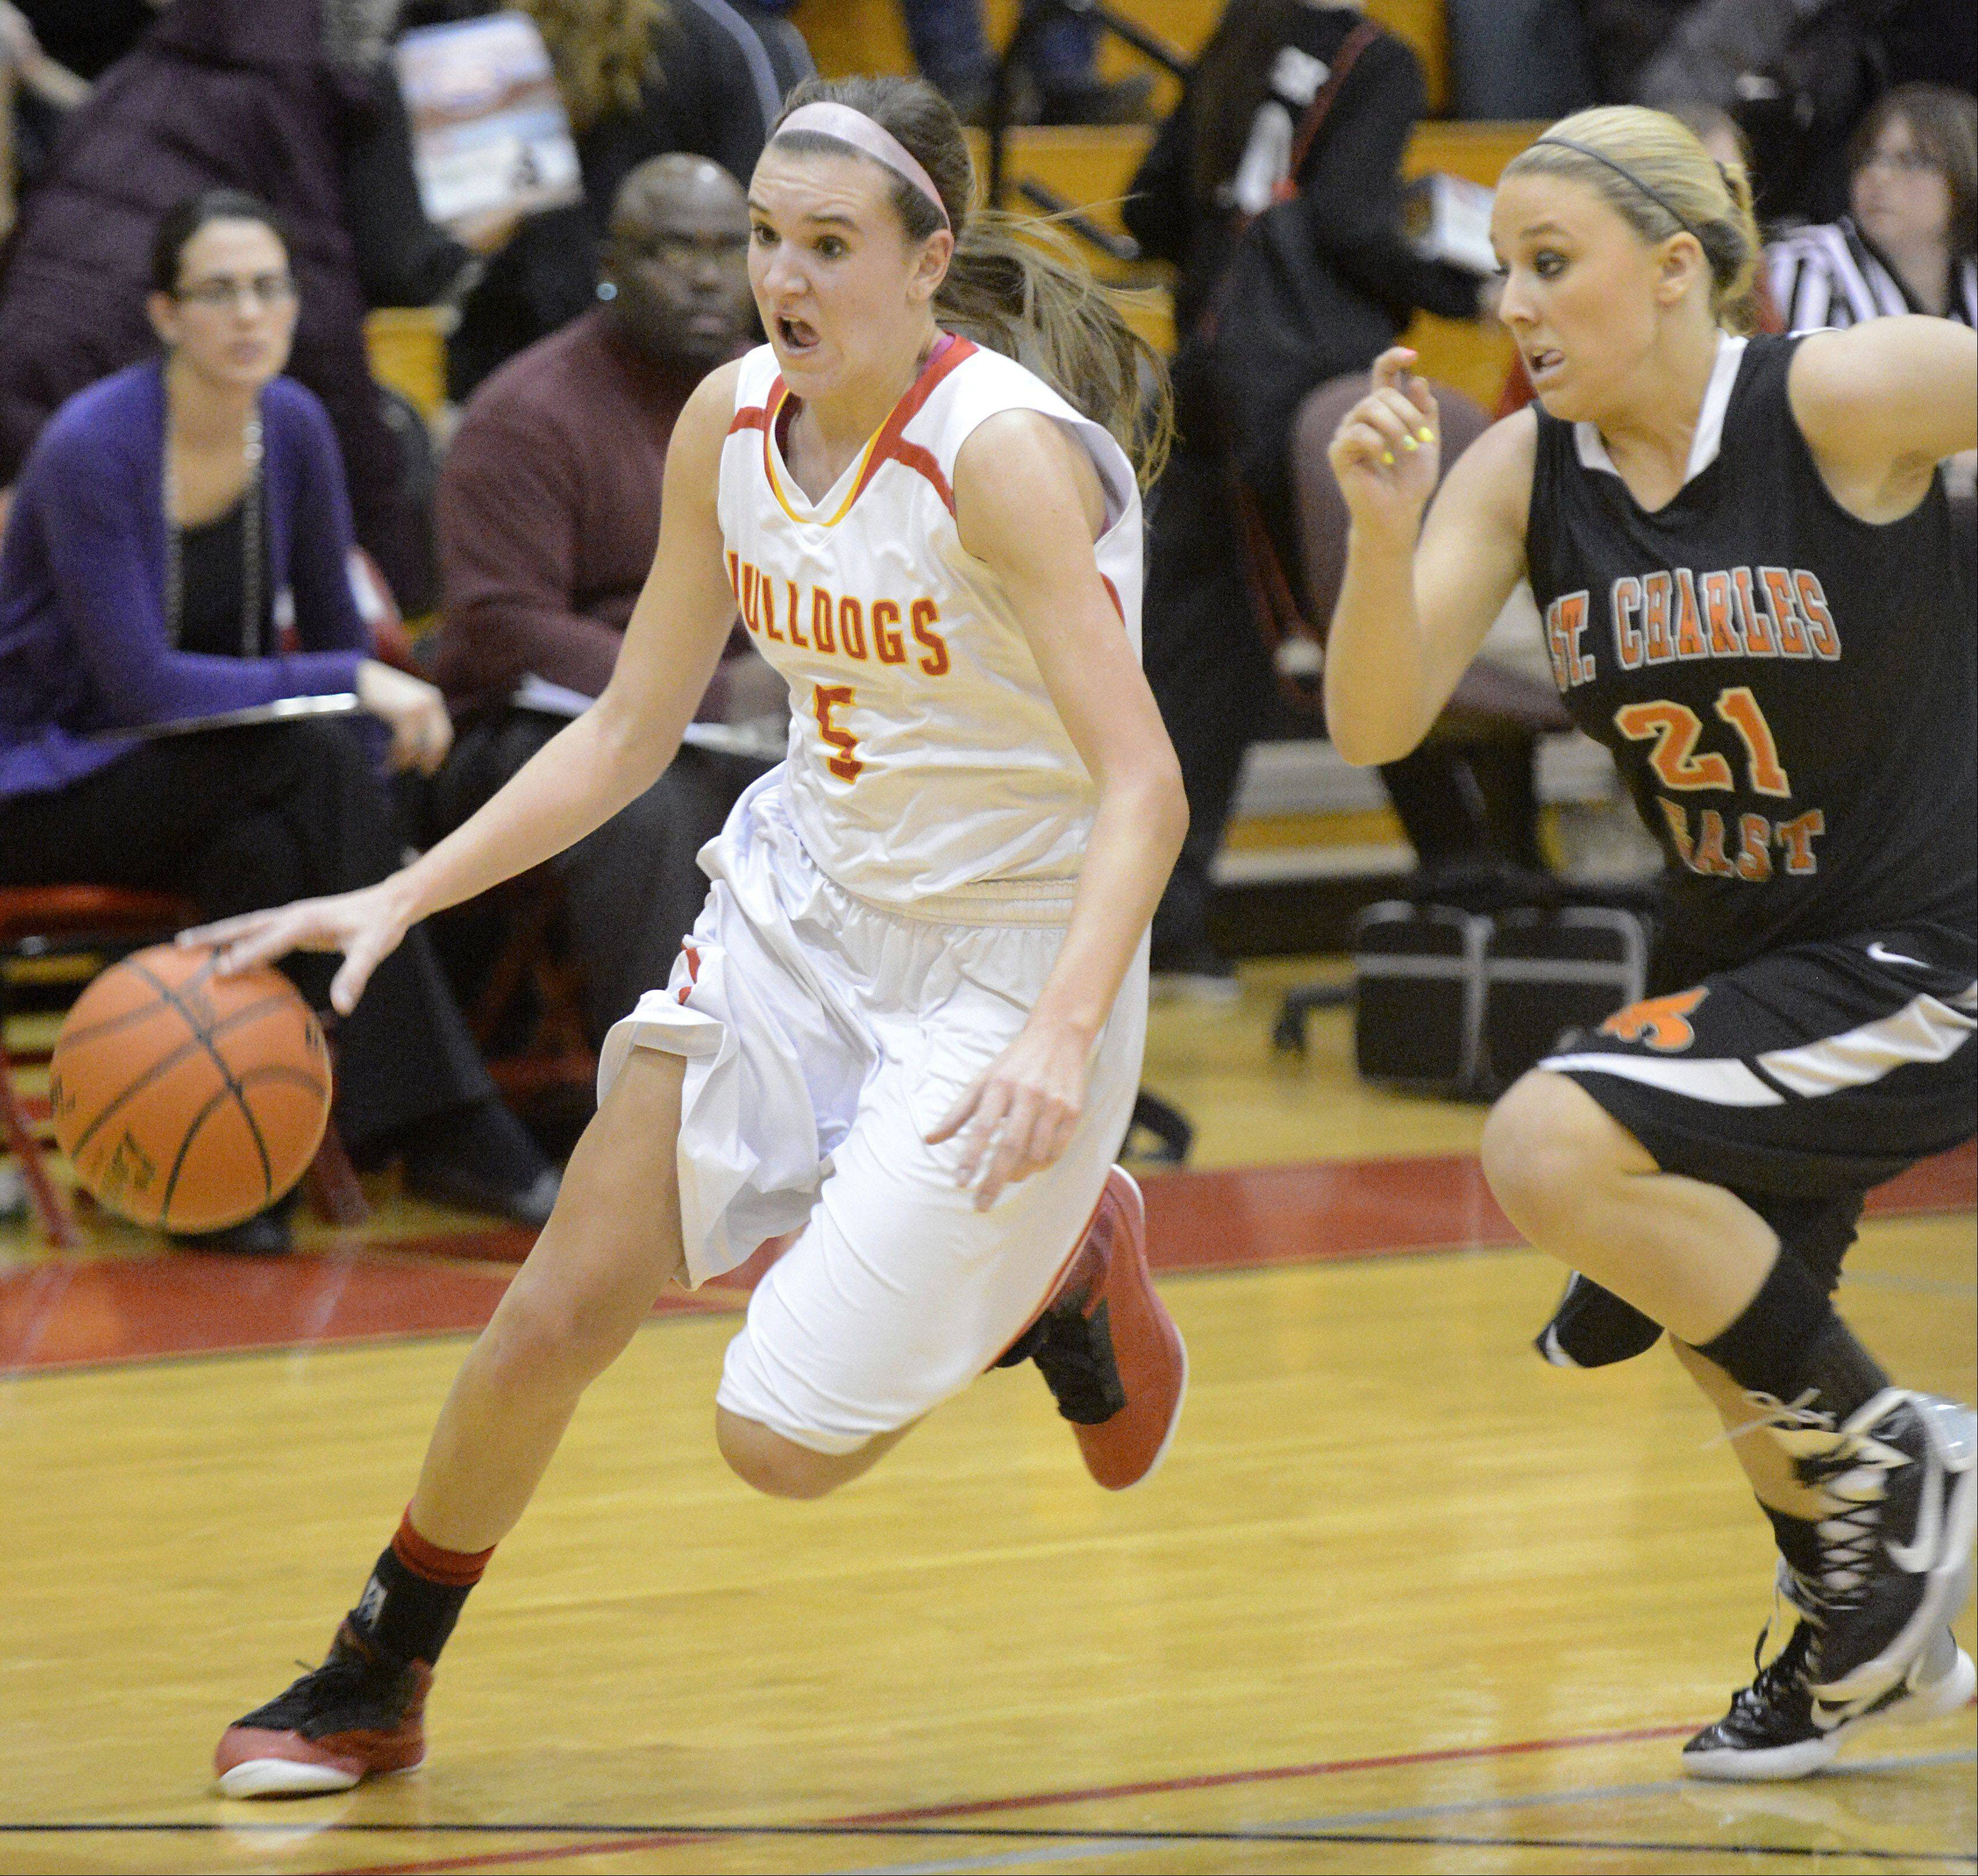 Batavia�s Liza Fruendt speeds past St. Charles East�s MacKenzie Meadows towards the hoop in the second quarter.